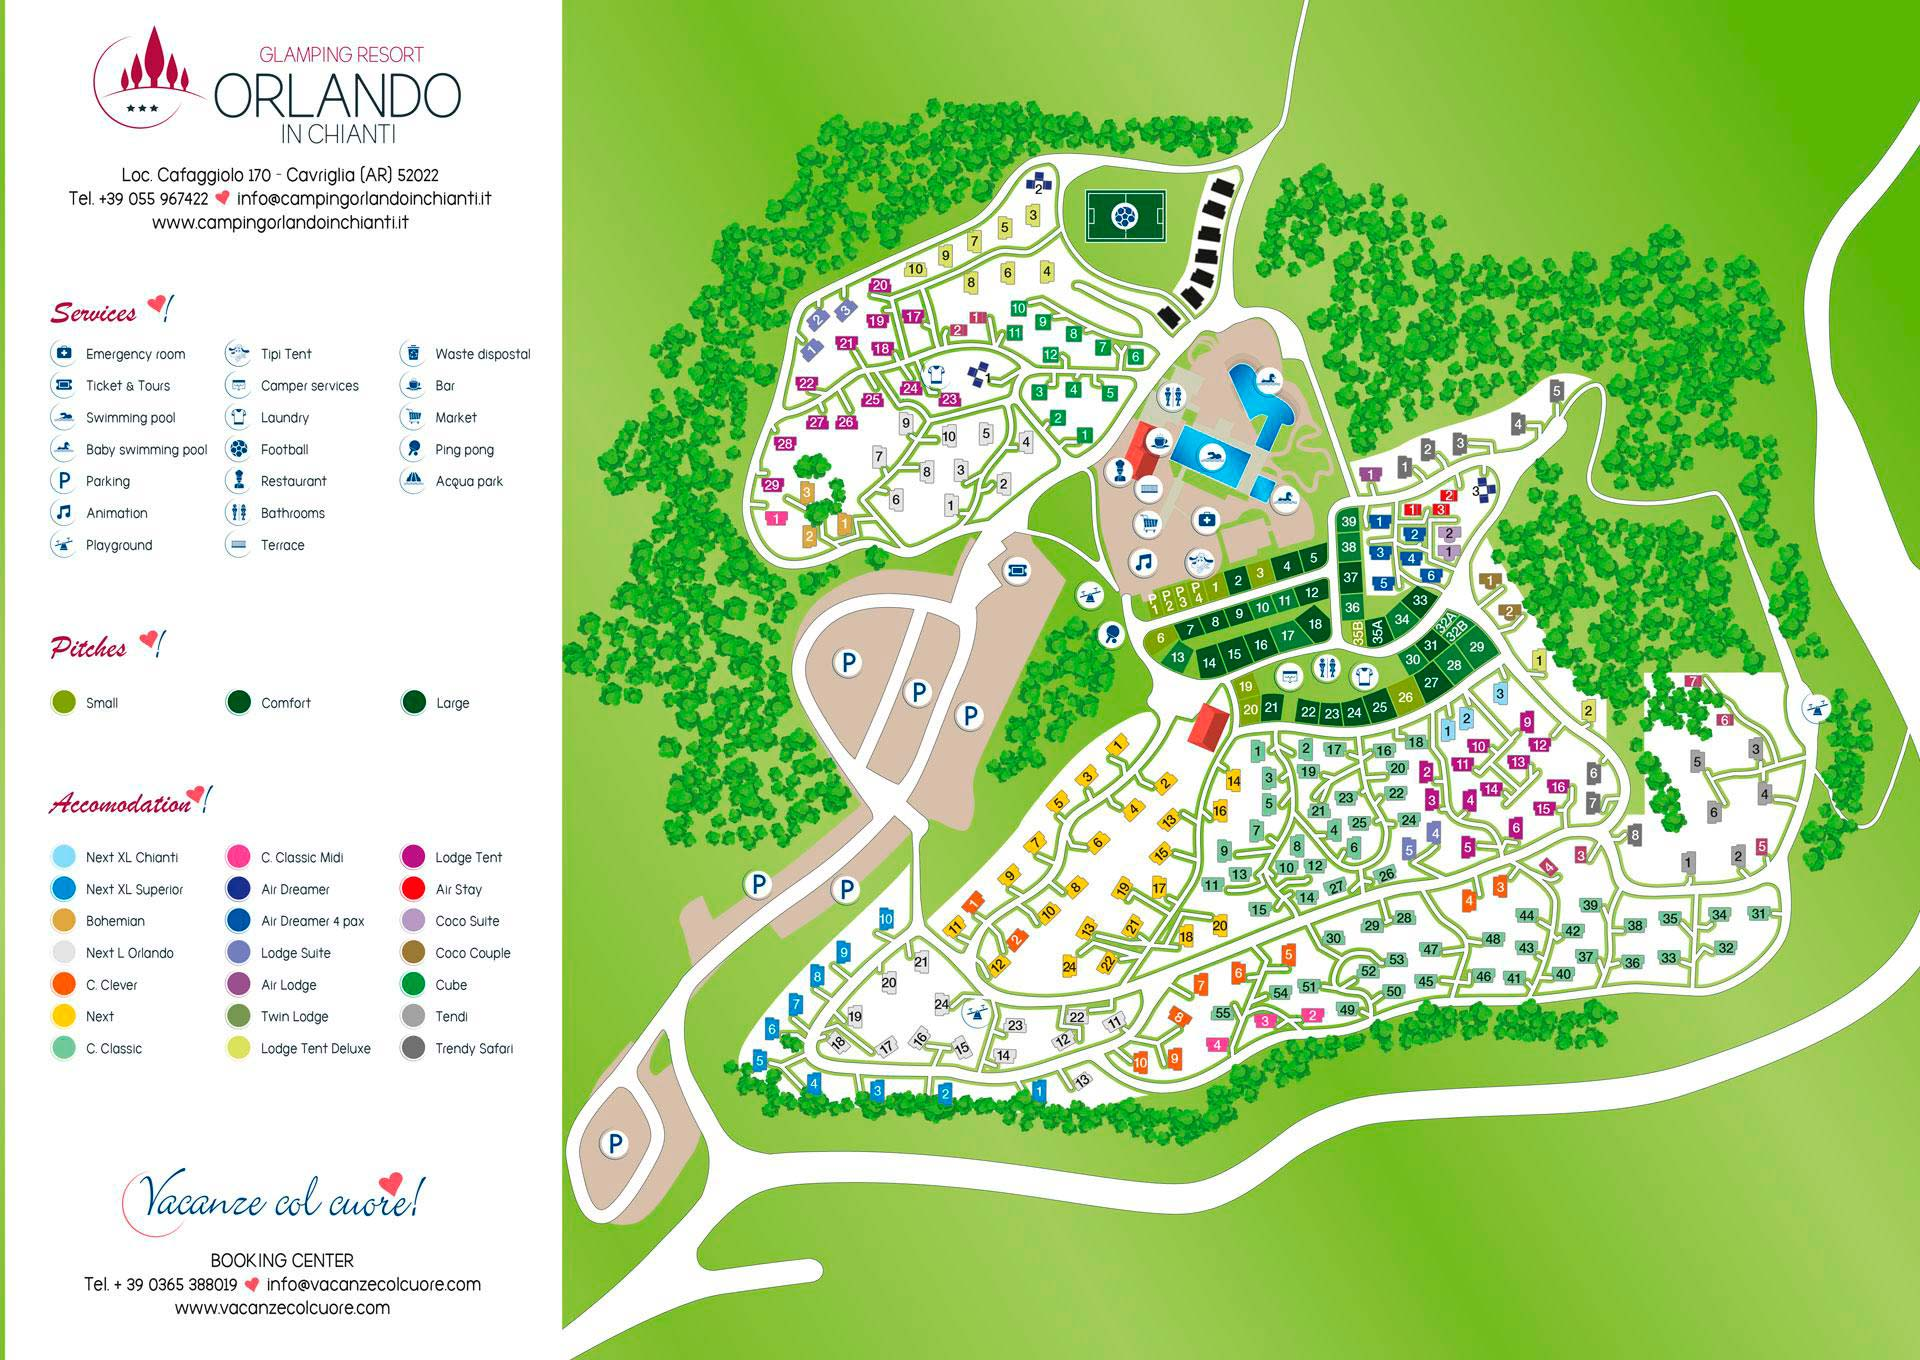 Orlando in Chianti Glamping Resort